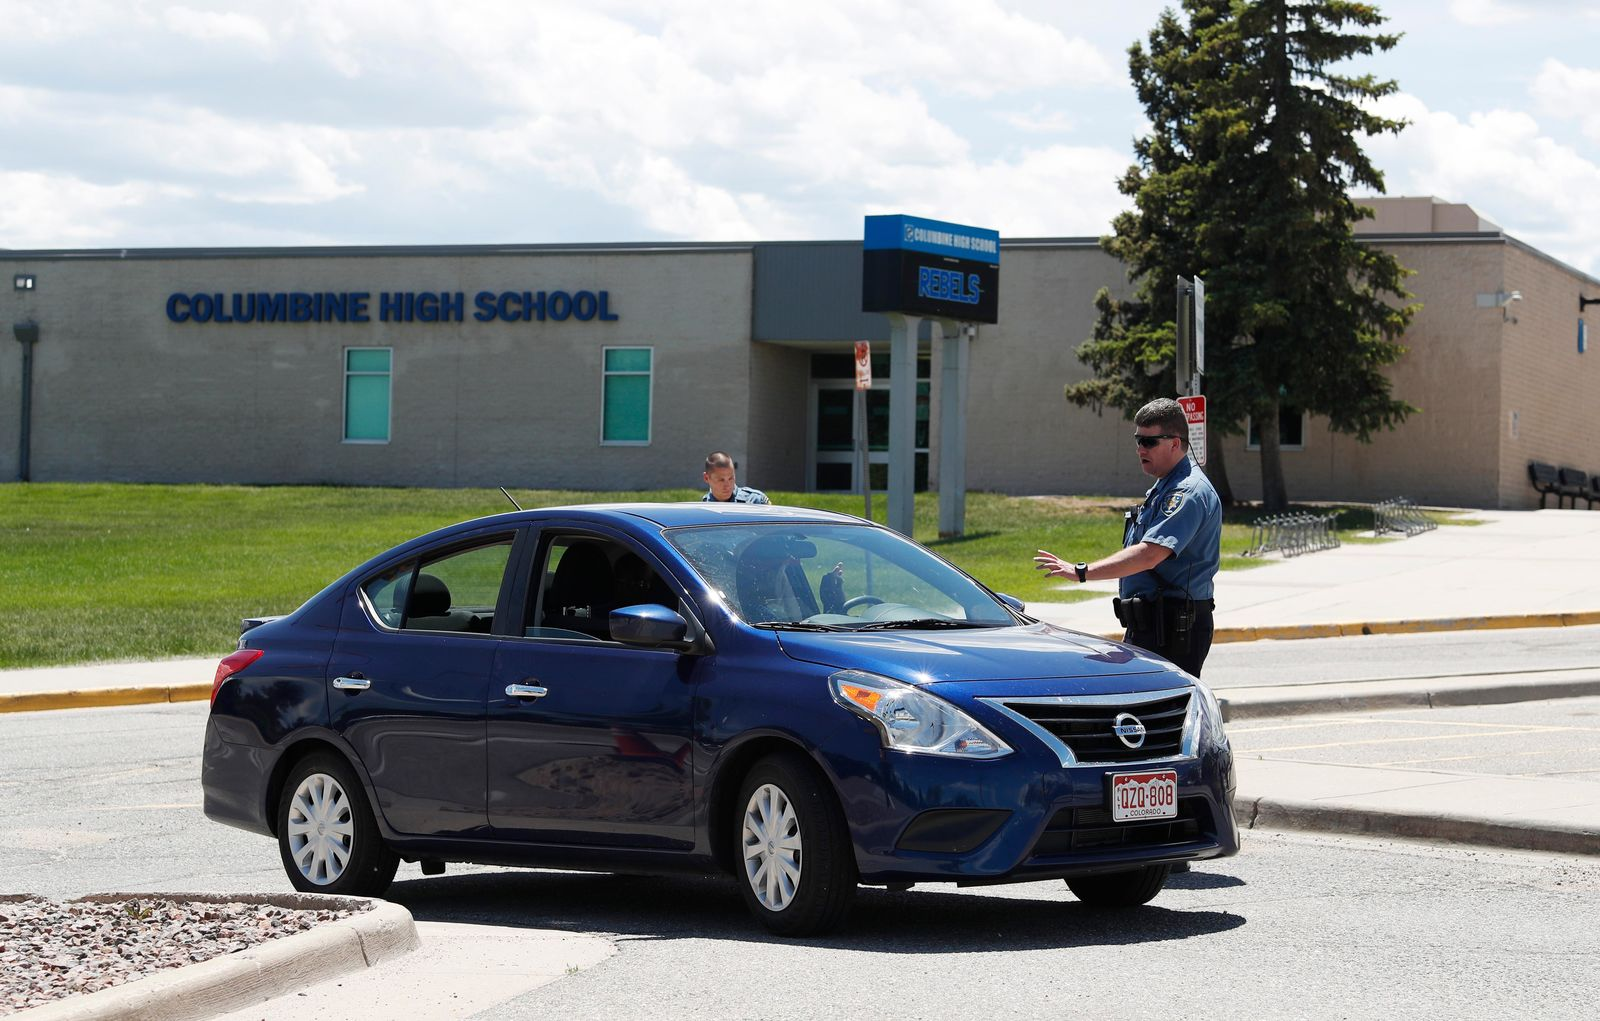 Officers from Jefferson County, Colo., Schools tell a motorist that they can not be on the property of Columbine High School, Thursday, June 13, 2019, in Littleton, Colo. The school district is considering the demolition of Columbine, the scene of a mass assault more than 20 years ago, and rebuilding the current school. (AP Photo/David Zalubowski)